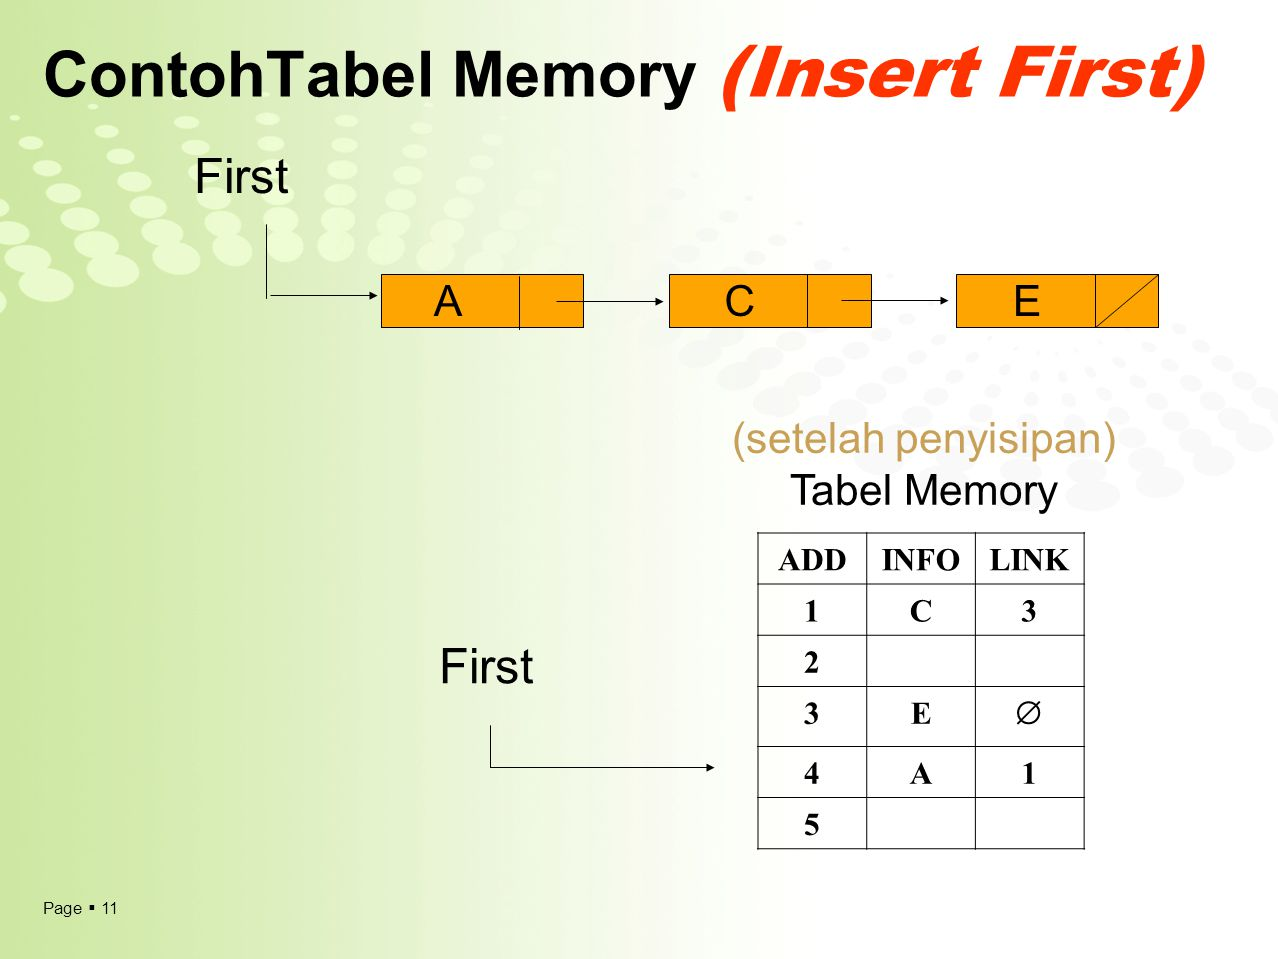 Page  11 ContohTabel Memory (Insert First) ADDINFOLINK 1C3 2 3E  4A1 5 (setelah penyisipan) Tabel Memory ACE First